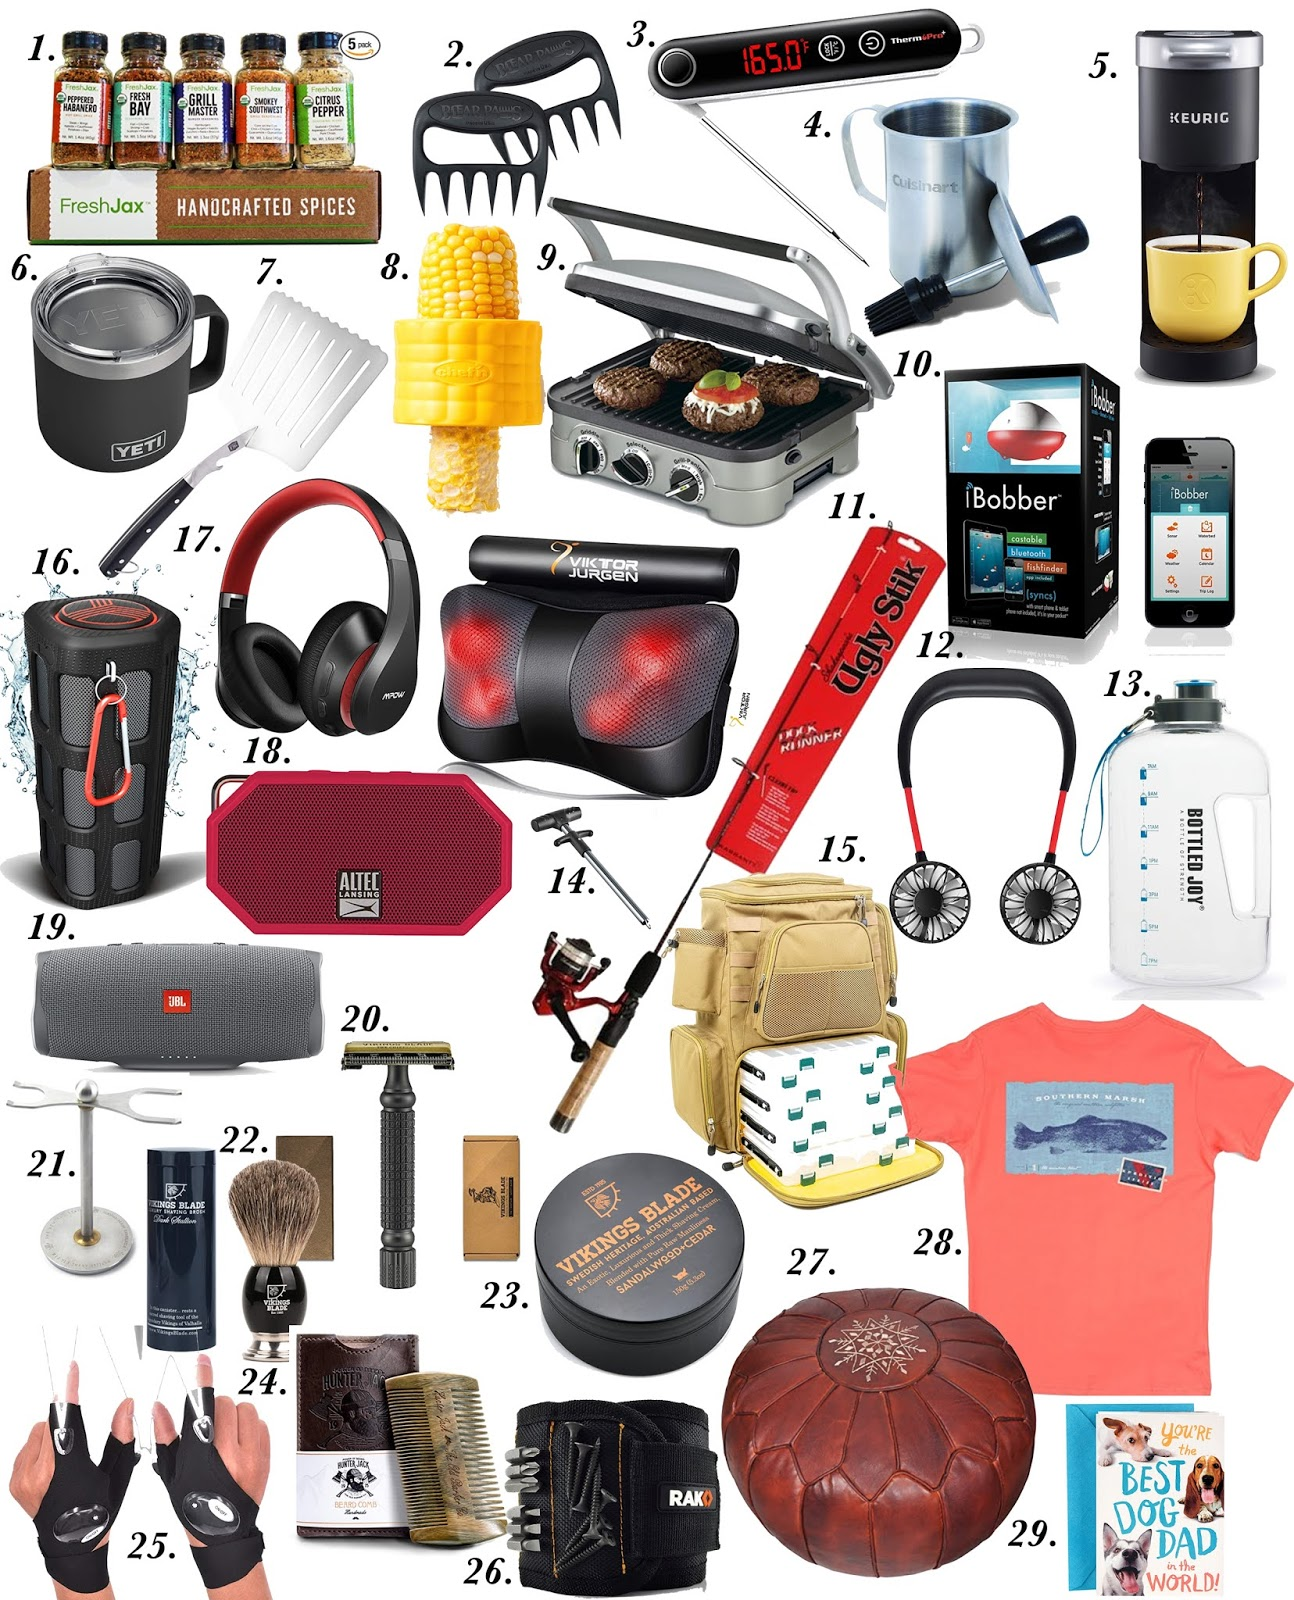 Father's Day 2020 Gift Ideas - Gift Ideas for Guys - Something Delightful Blog #fathersdaygifts #giftsformen #guygifts #giftideasforguys